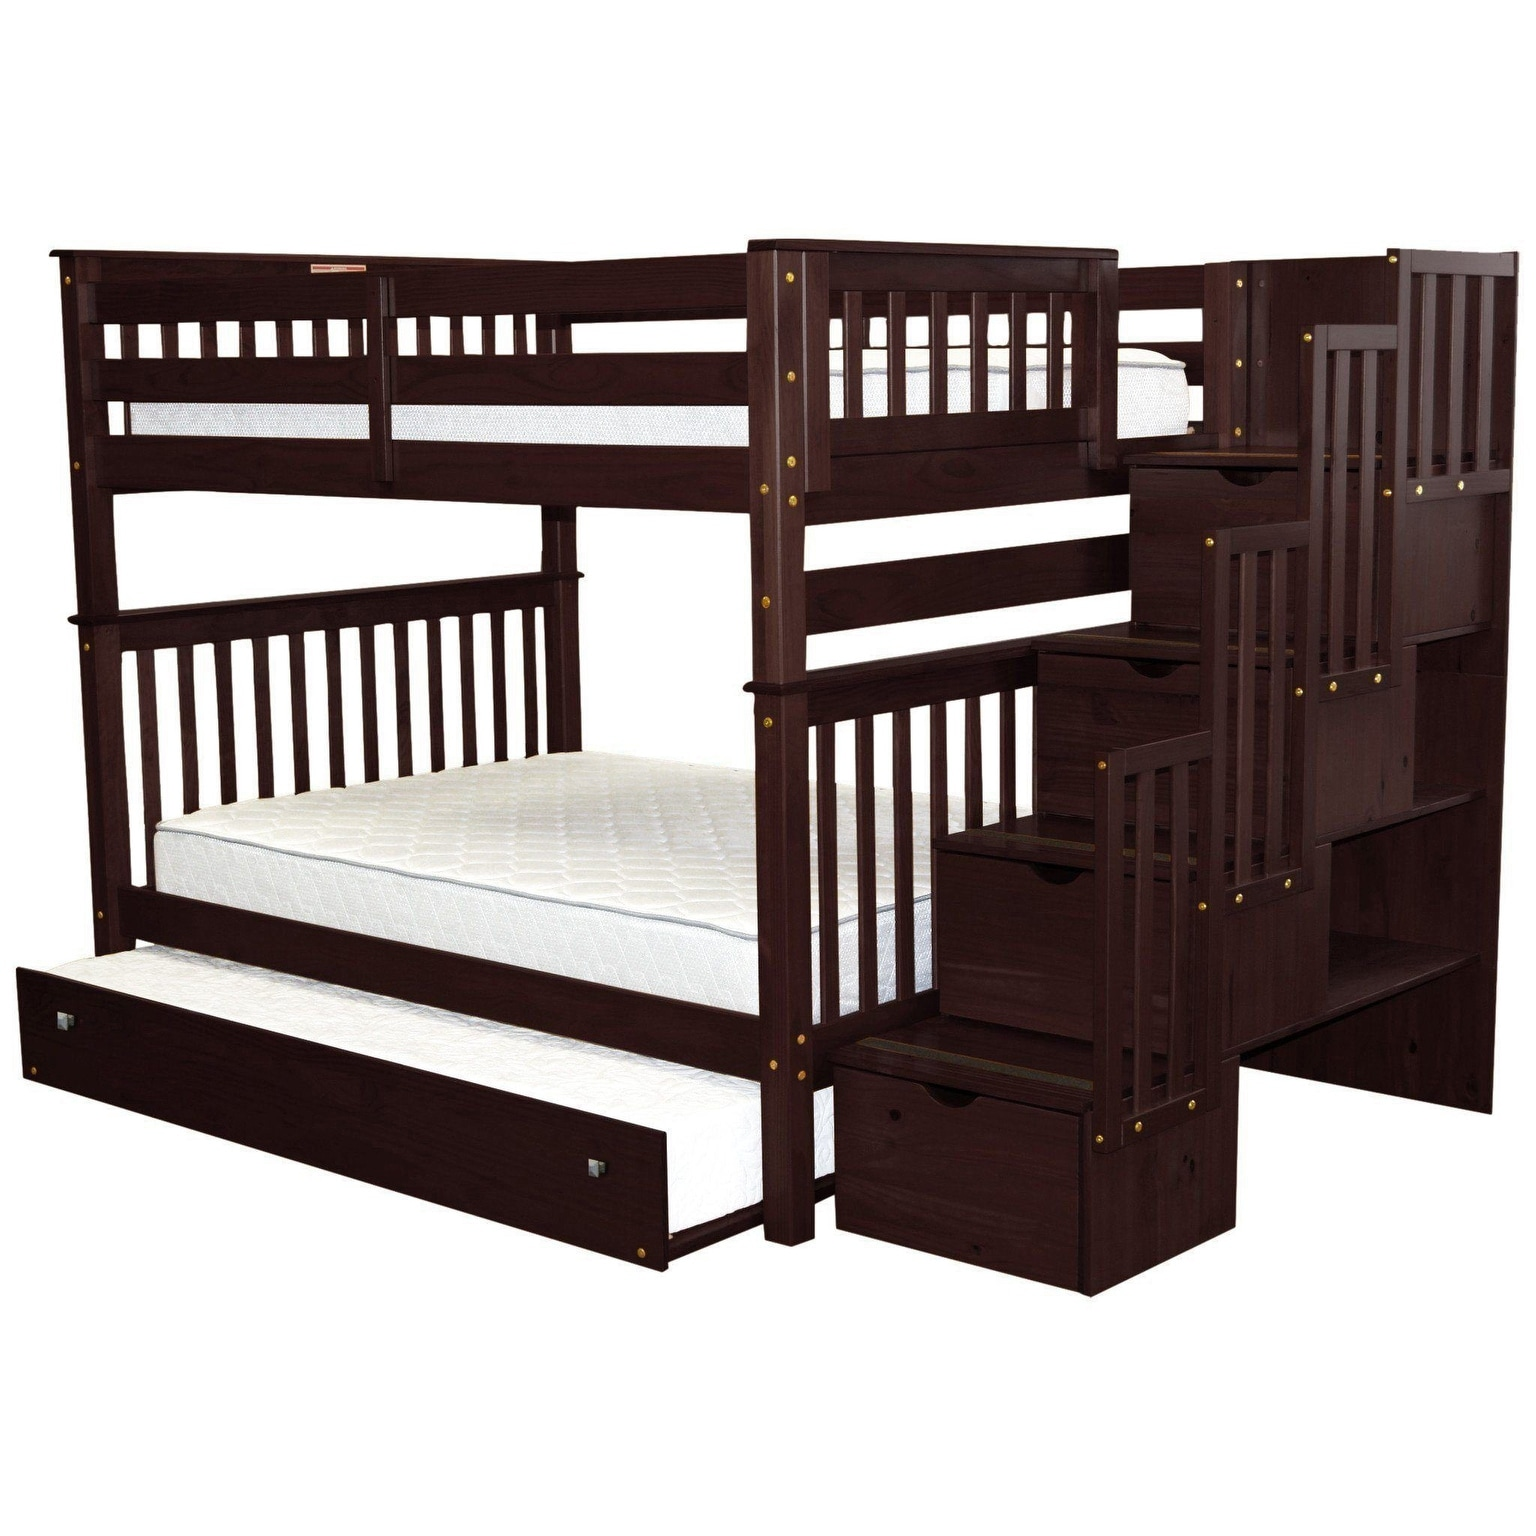 Picture of: Bedz King Stairway Bunk Beds Full Over Full With 4 Drawers In The Steps And A Full Trundle Cappuccino Overstock 22087646